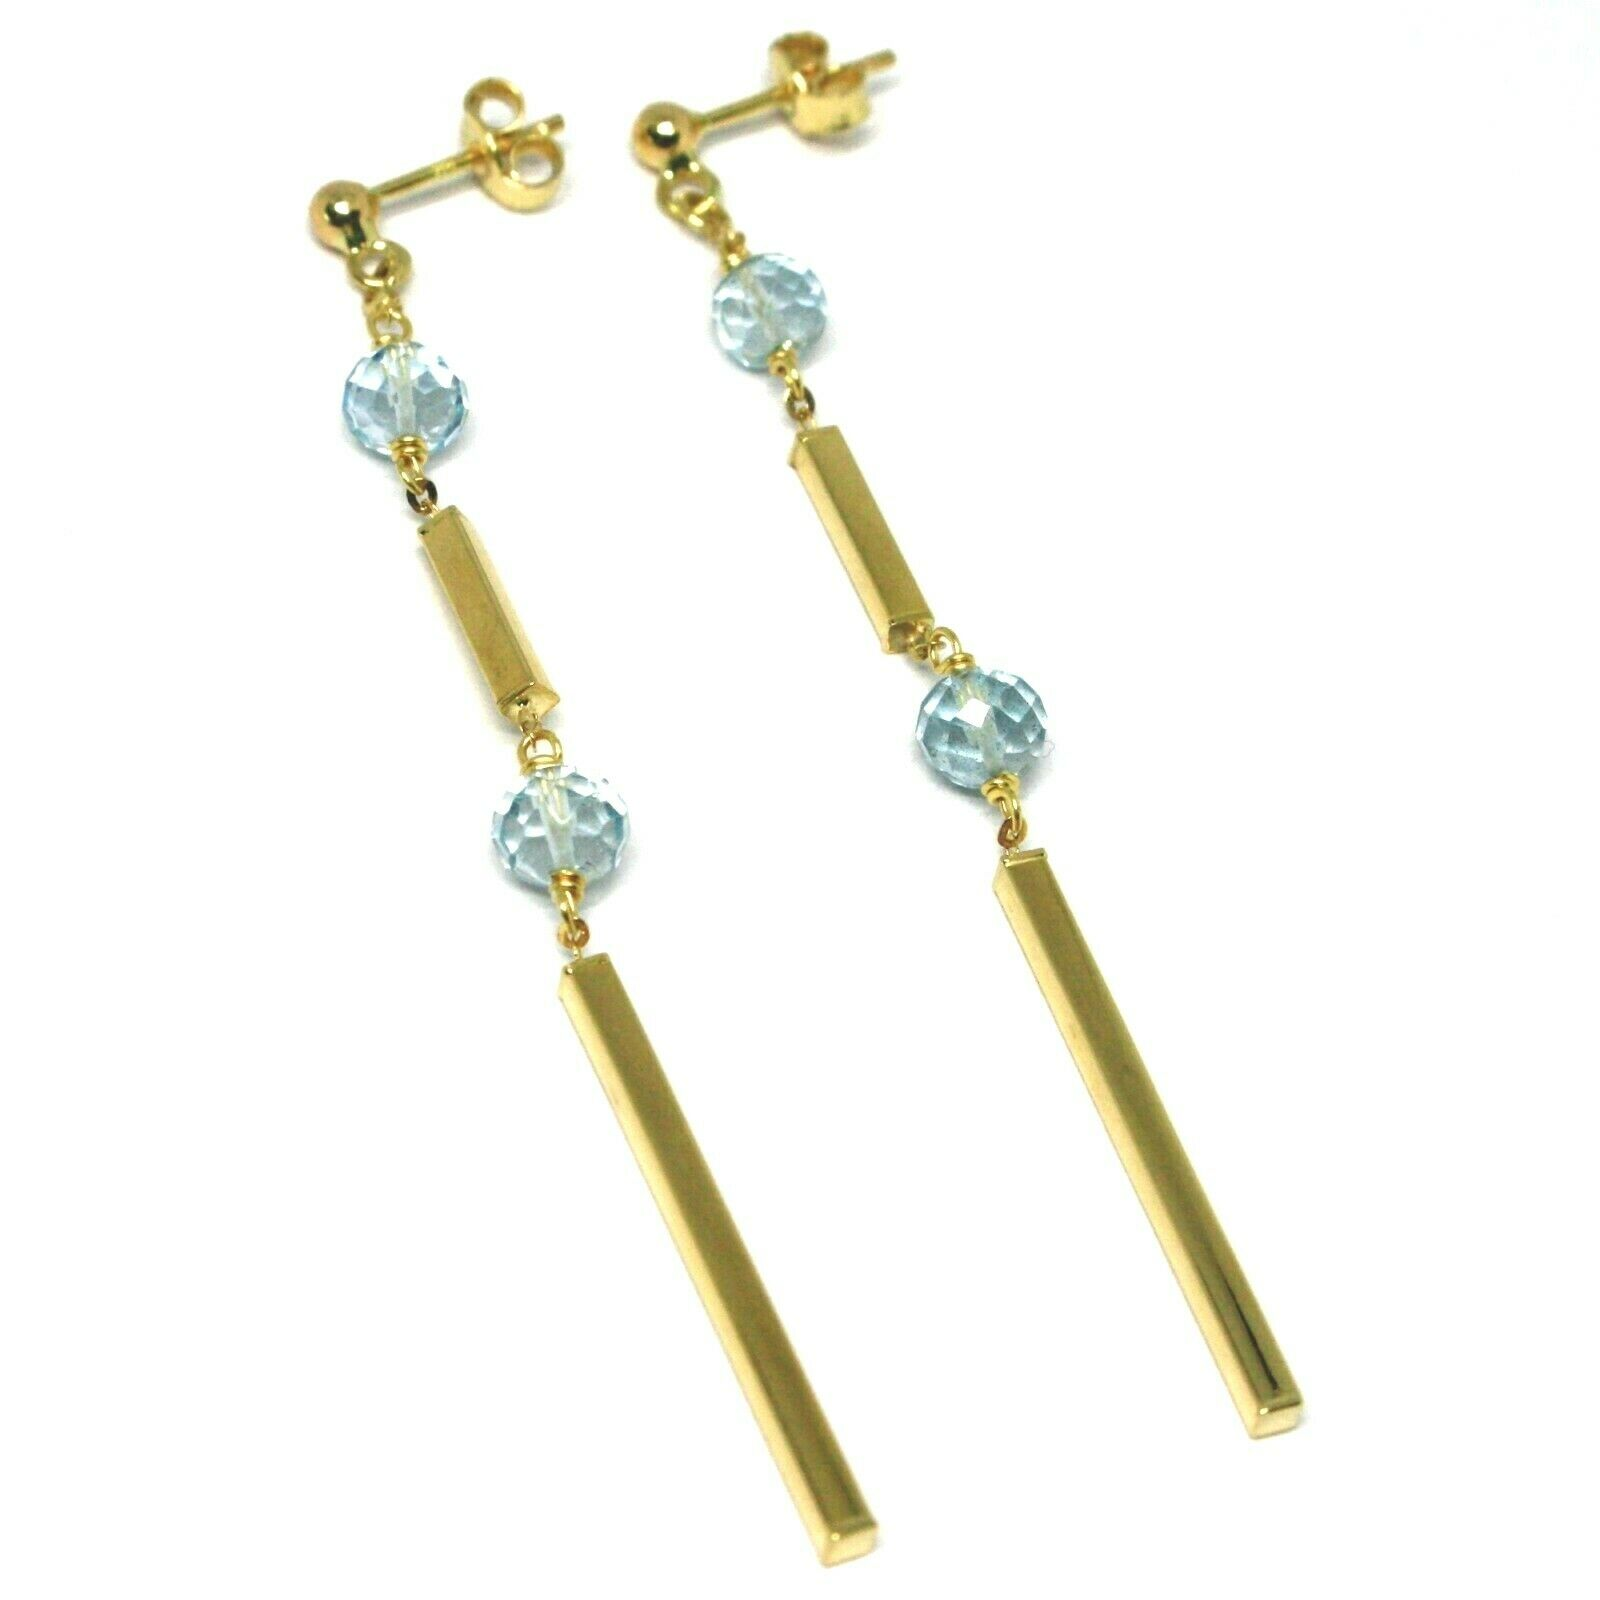 18K YELLOW gold PENDANT EARRINGS, FACETED AQUAMARINE, TUBES, LENGTH 2.75 INCHES